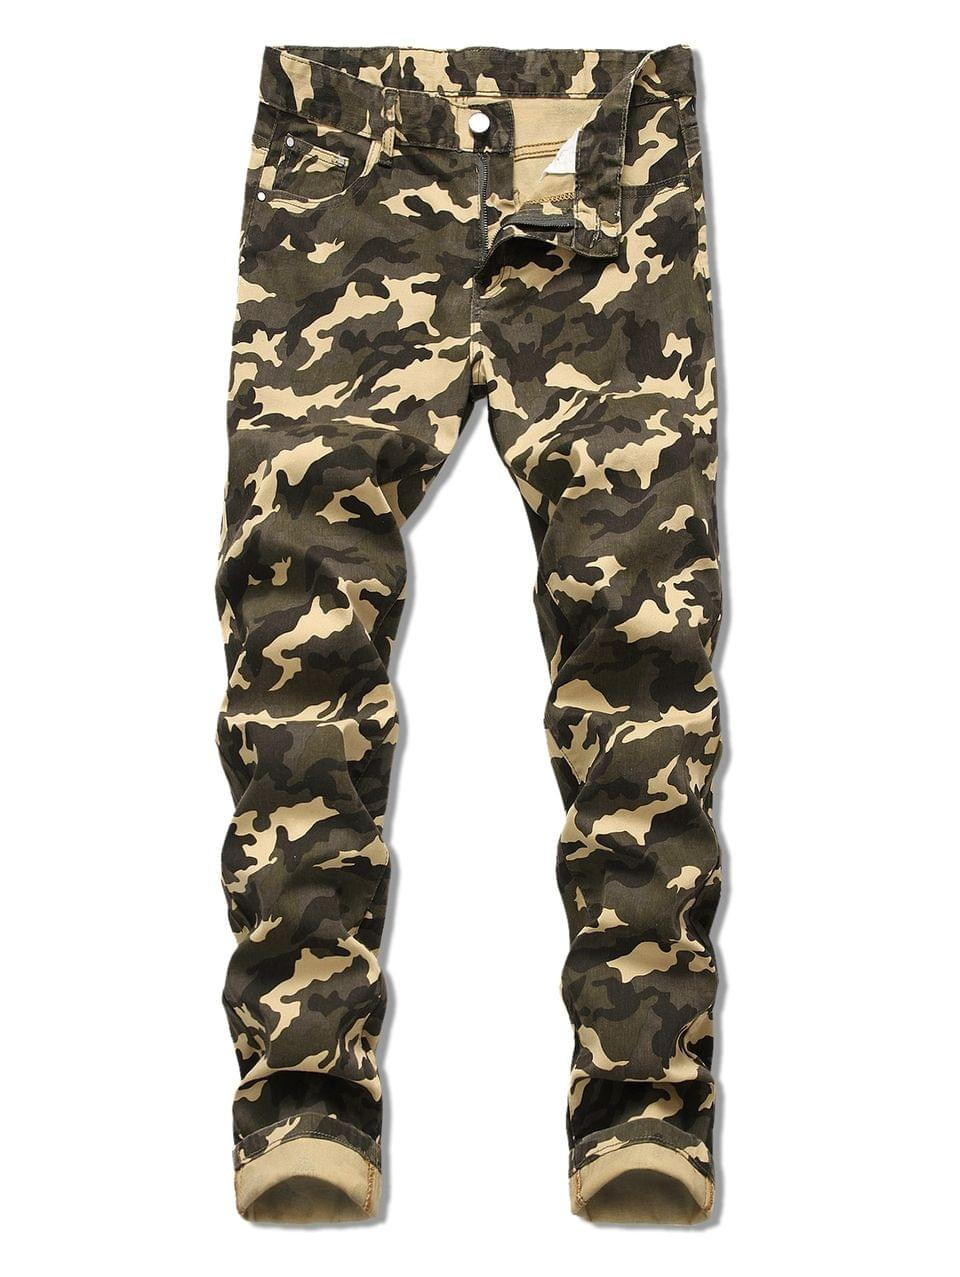 Men's Camo Pattern Zip Fly Casual Cuffed Jeans - Army Green 34